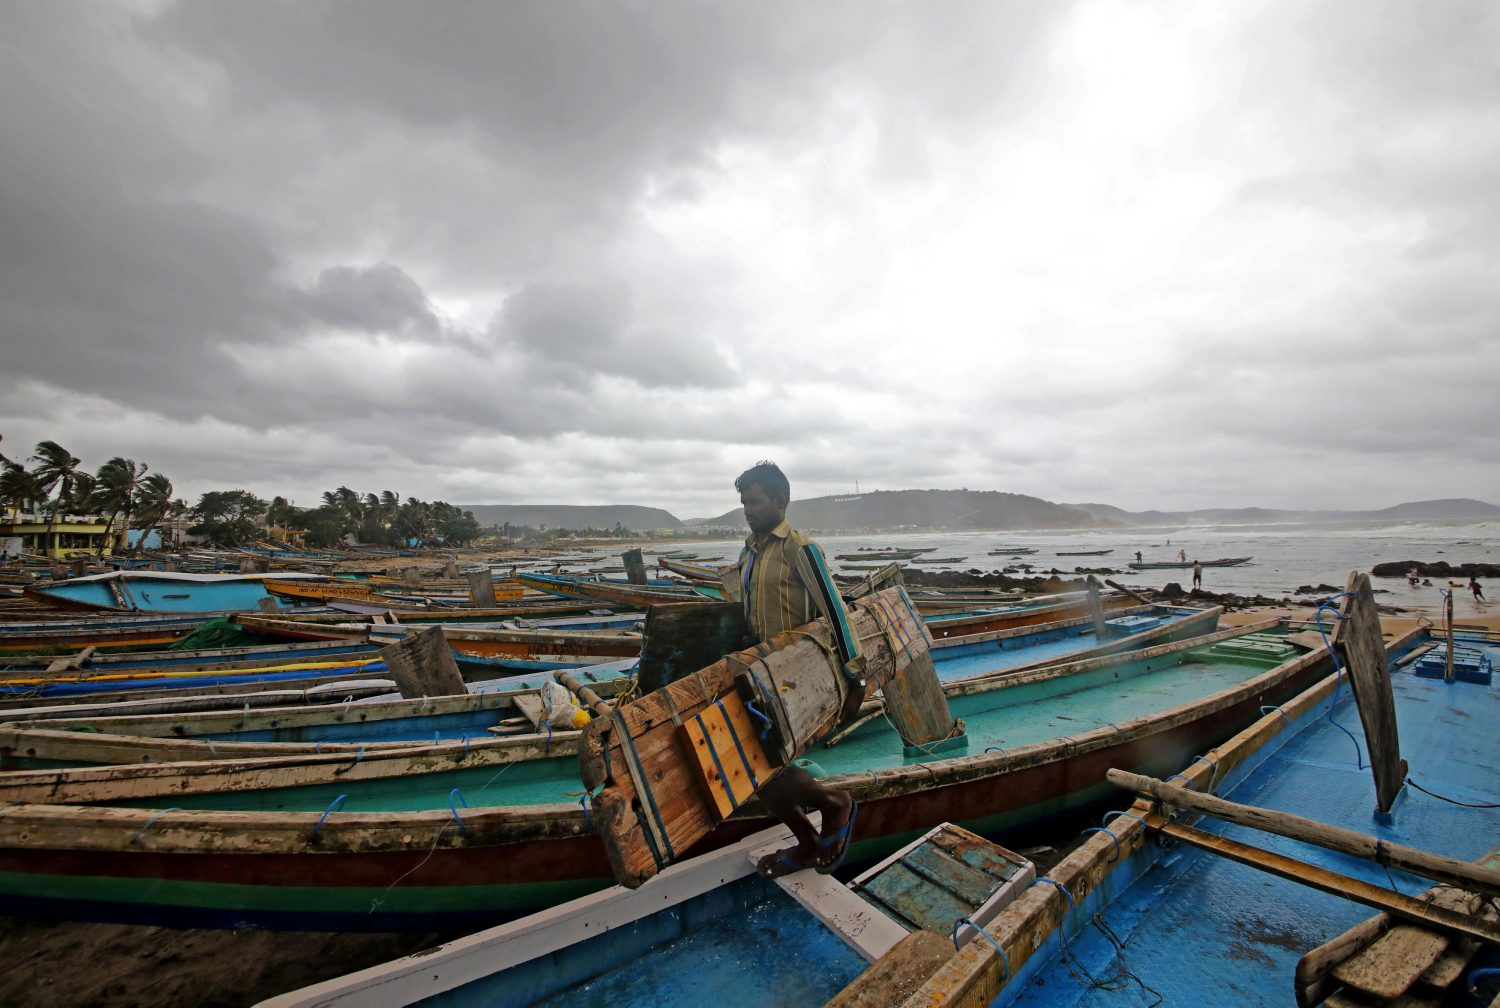 A fisherman carries his tools as he leaves for a safer place after tying his boats along the shore ahead of cyclone Fani in Peda Jalaripeta on the outskirts of Visakhapatnam, India, May 1, 2019. REUTERS/Stringer